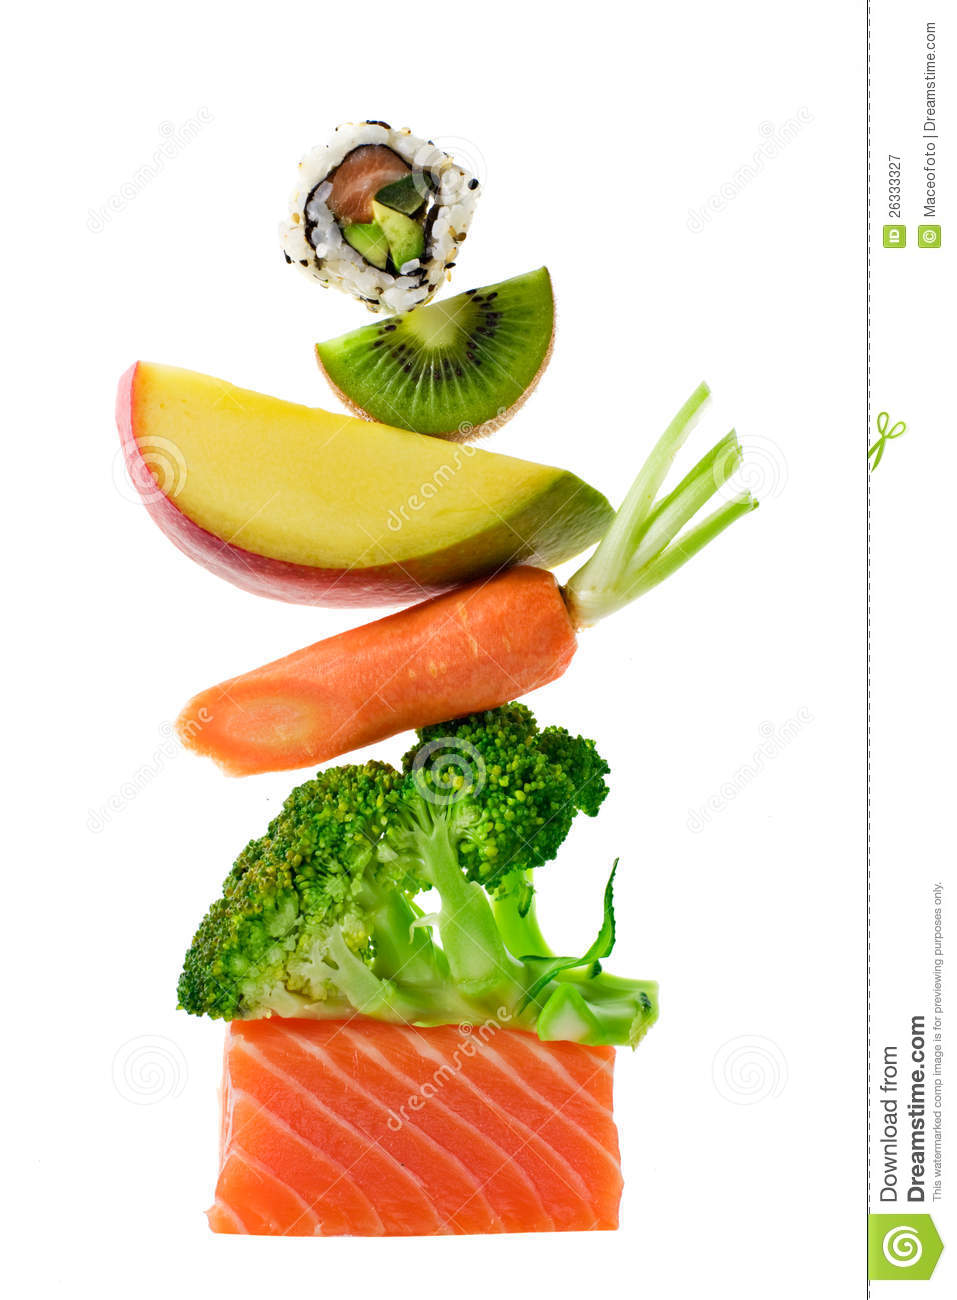 Food Stack Royalty Free Stock Photography Image 26333327